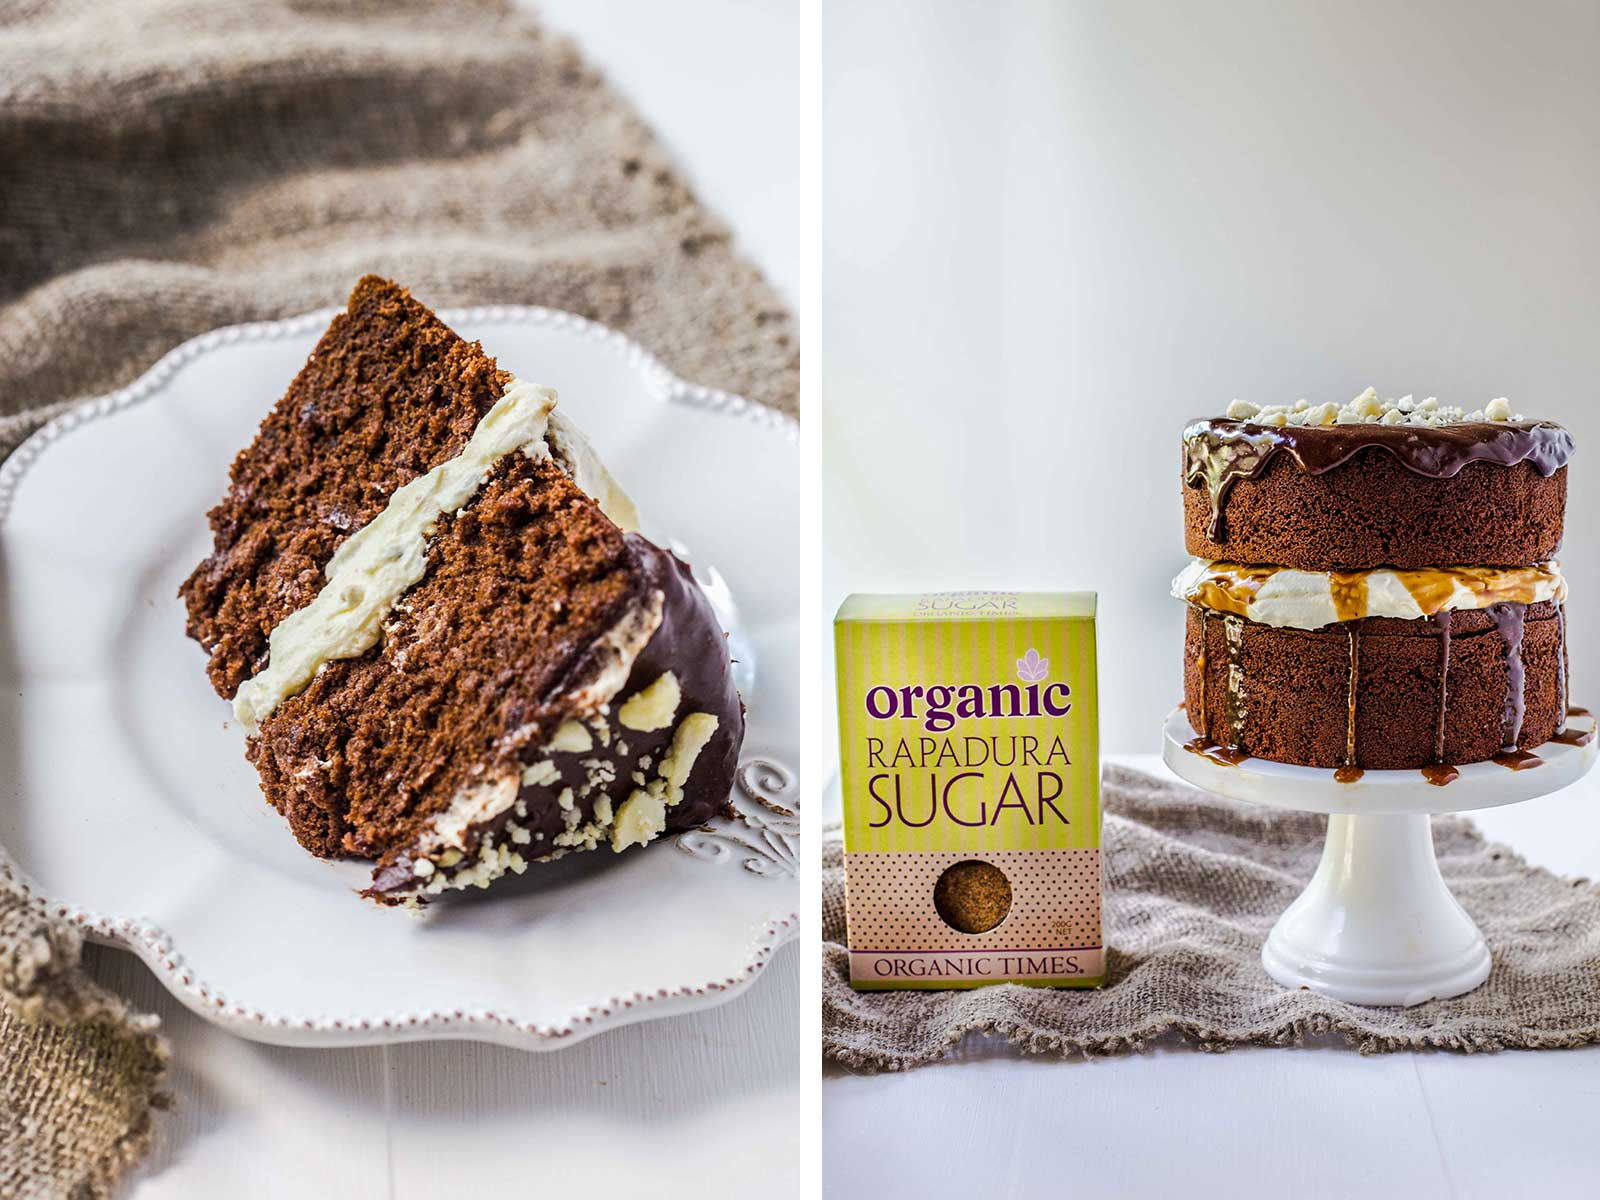 Organic Times Rapadure Sugar packet next to a slice of Chocolate Caramel Cream Layer Cake